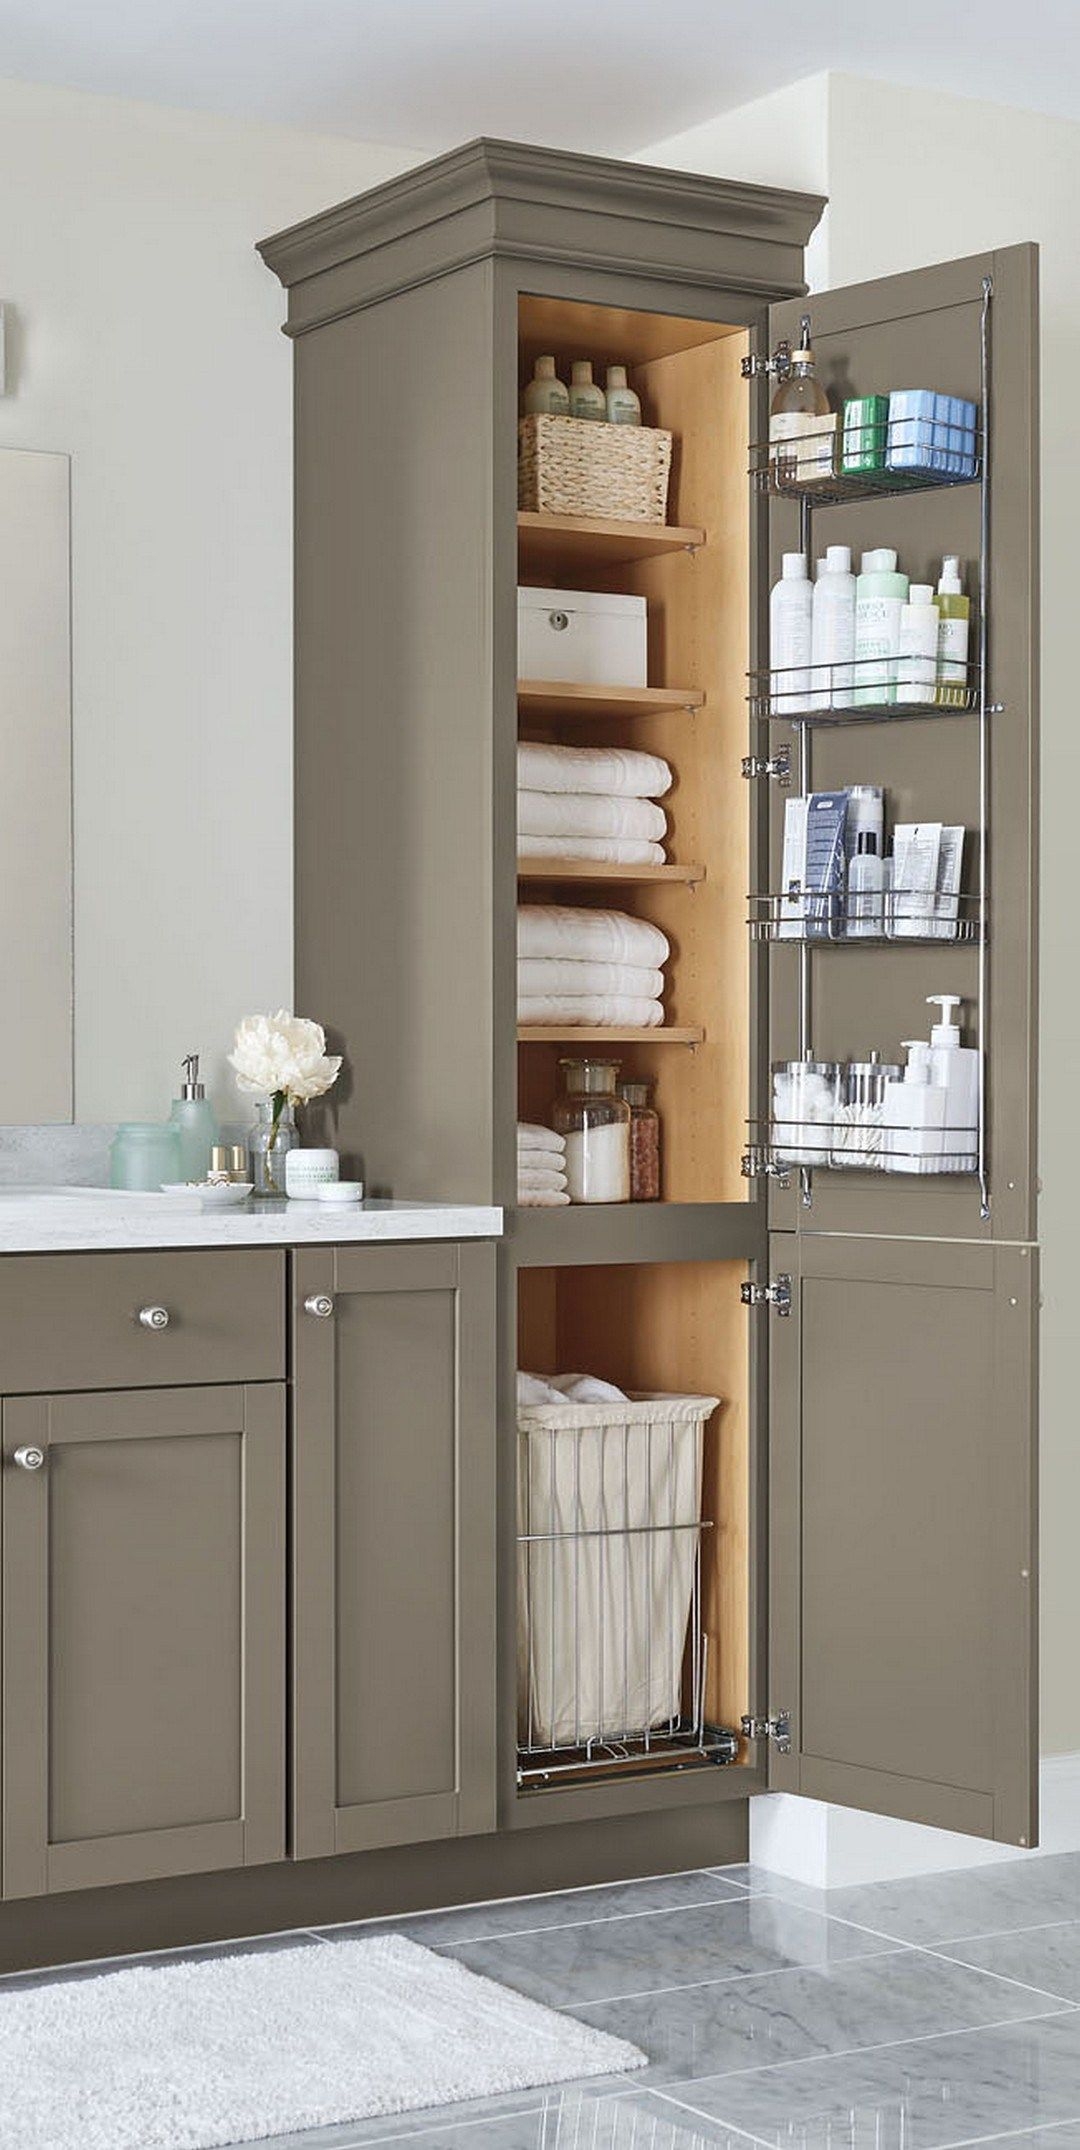 We Have 29 Bathroom Storage Ideas That Will Transform Your Messy Bathroom  Into A Space Efficient Room That Looks Neat And Beautiful.